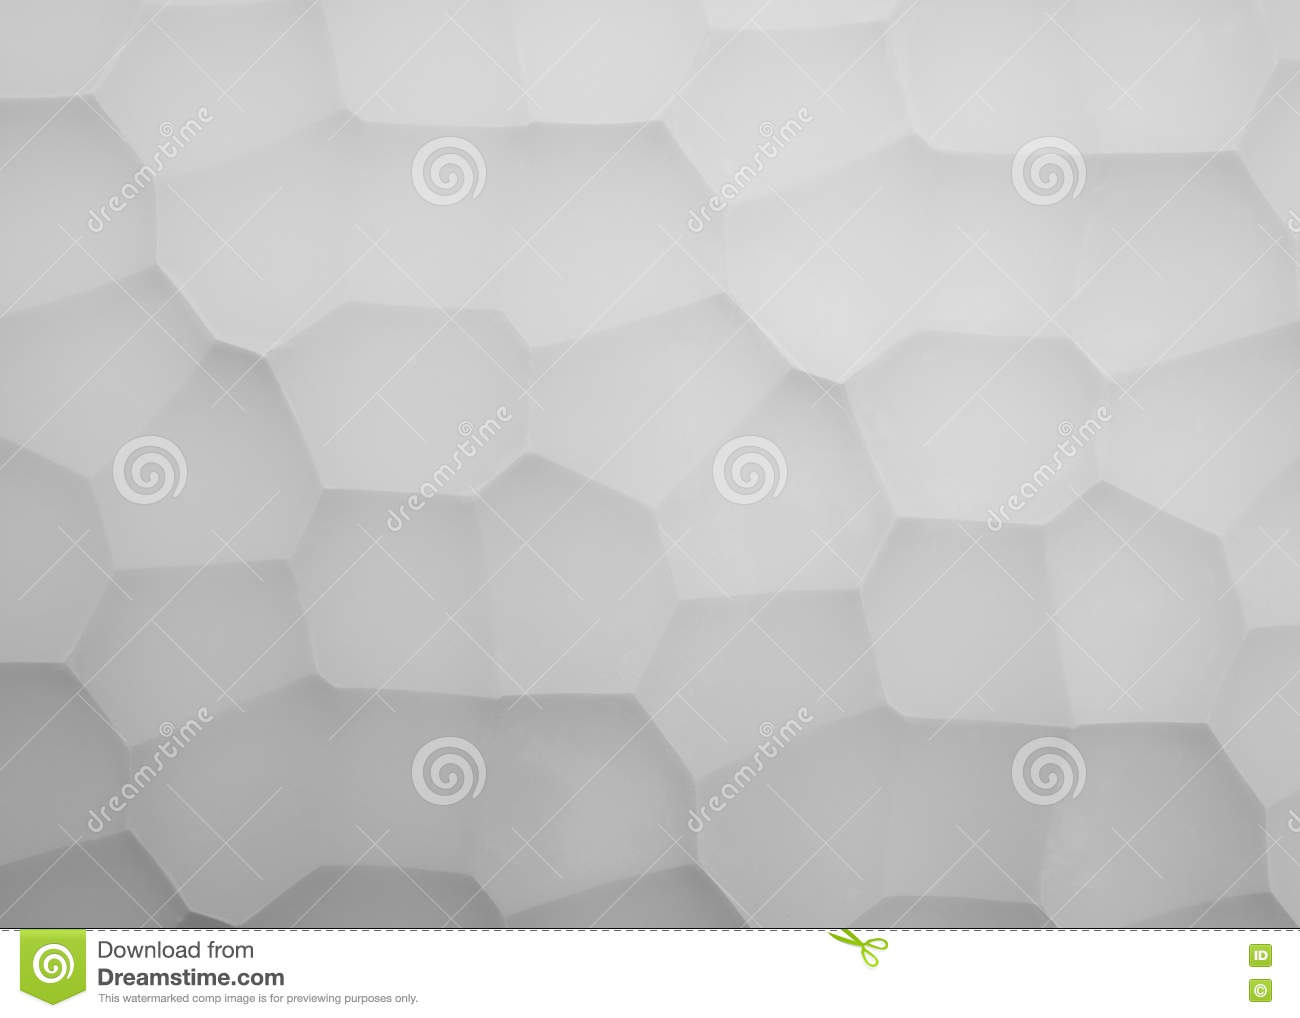 Abstract picture panels made of gypsum with geometry pattern